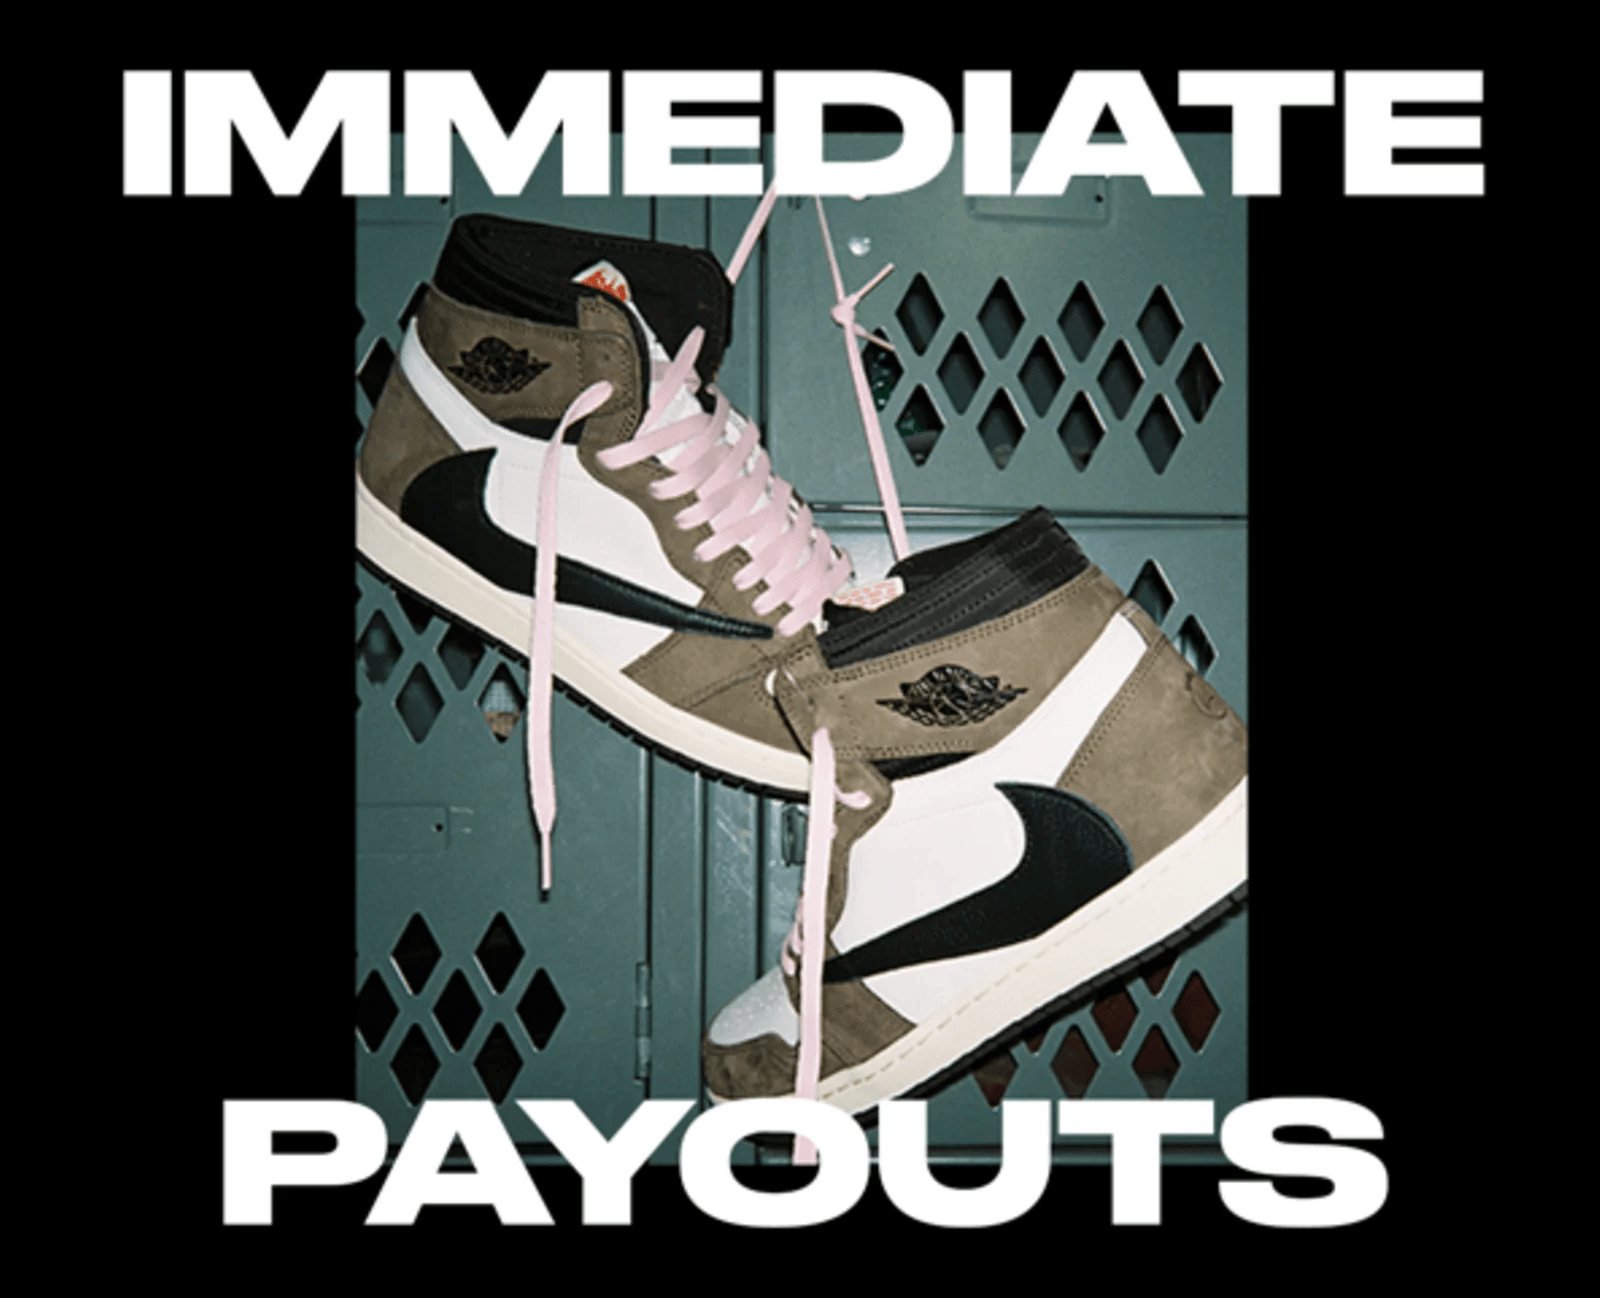 travis scott aj1 di flight club - img 5cdc413400e8d - Flight Club Memperkenalkan Program BuyBack yang Kontroversial pada Travis Scott AJ1